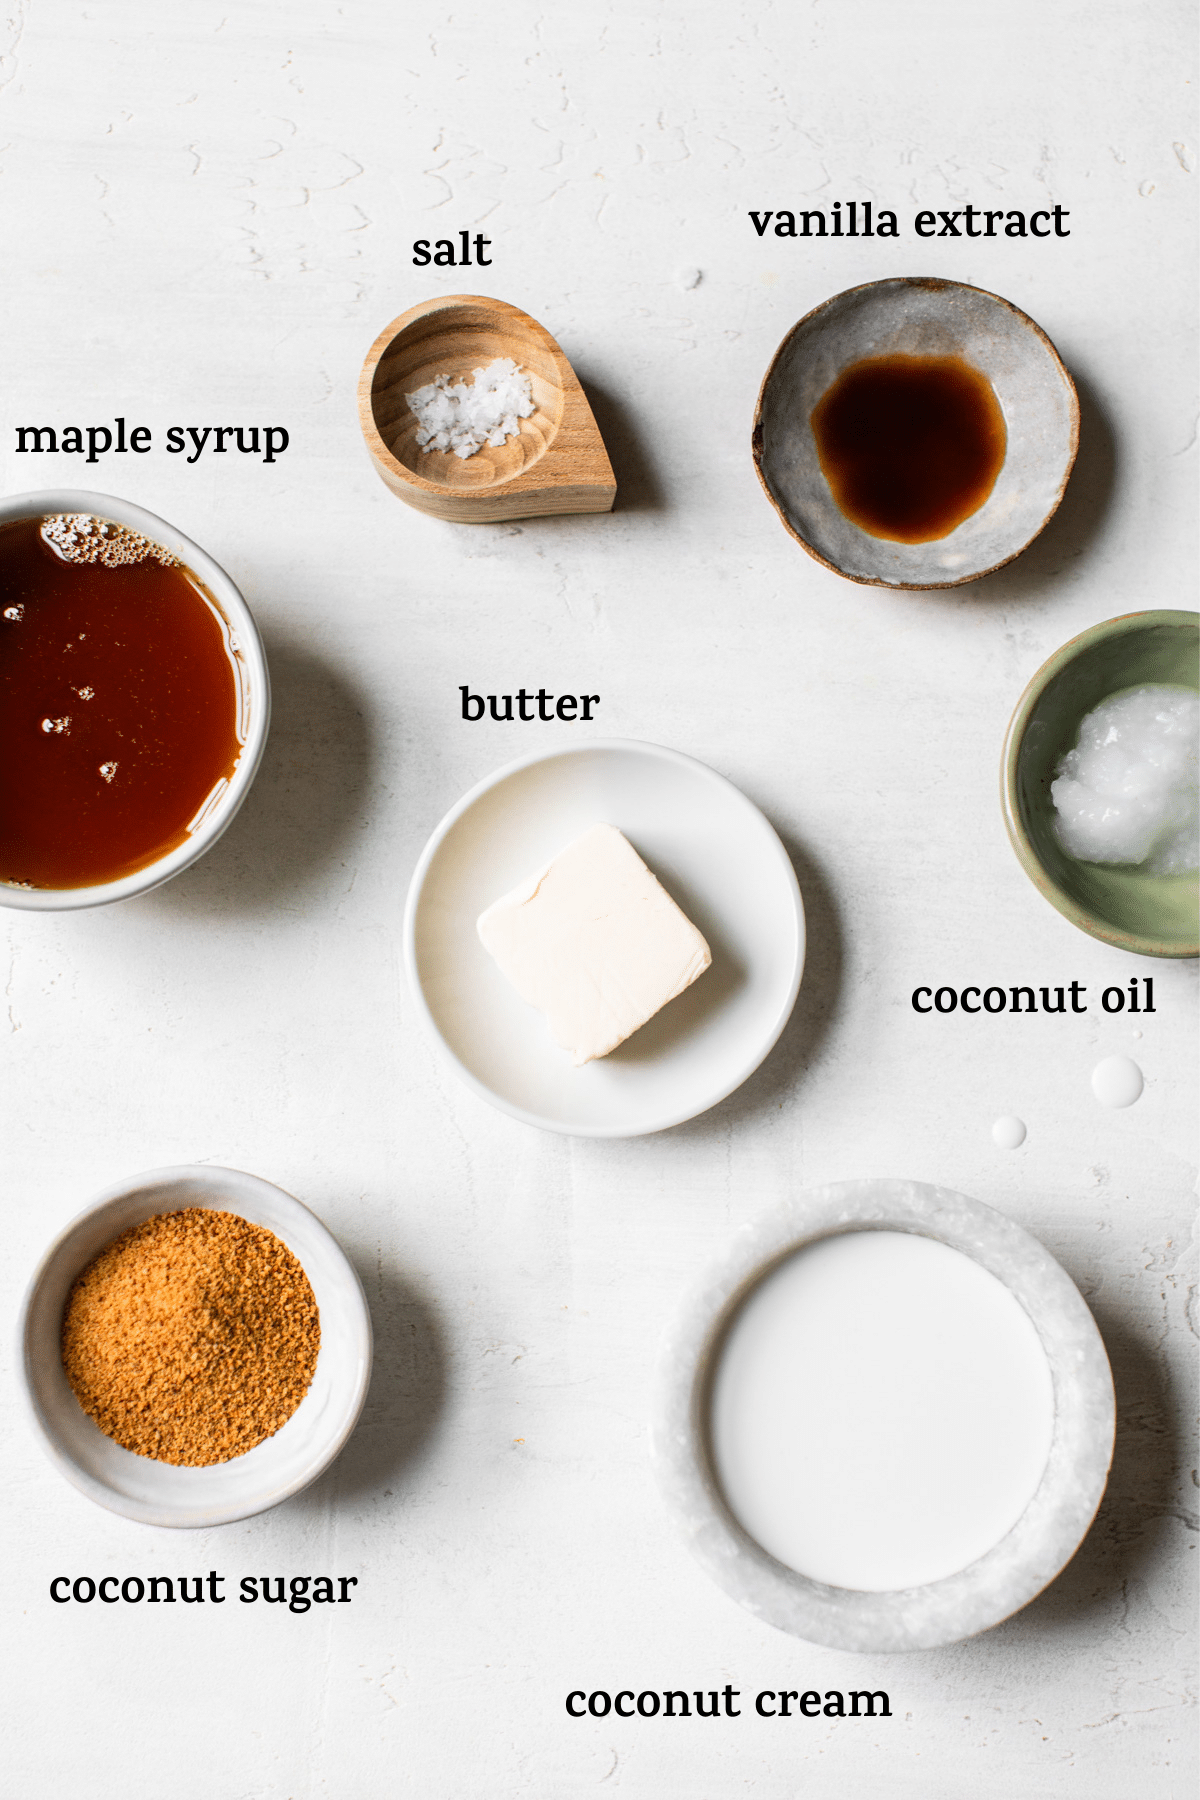 caramel sauce ingredients with text